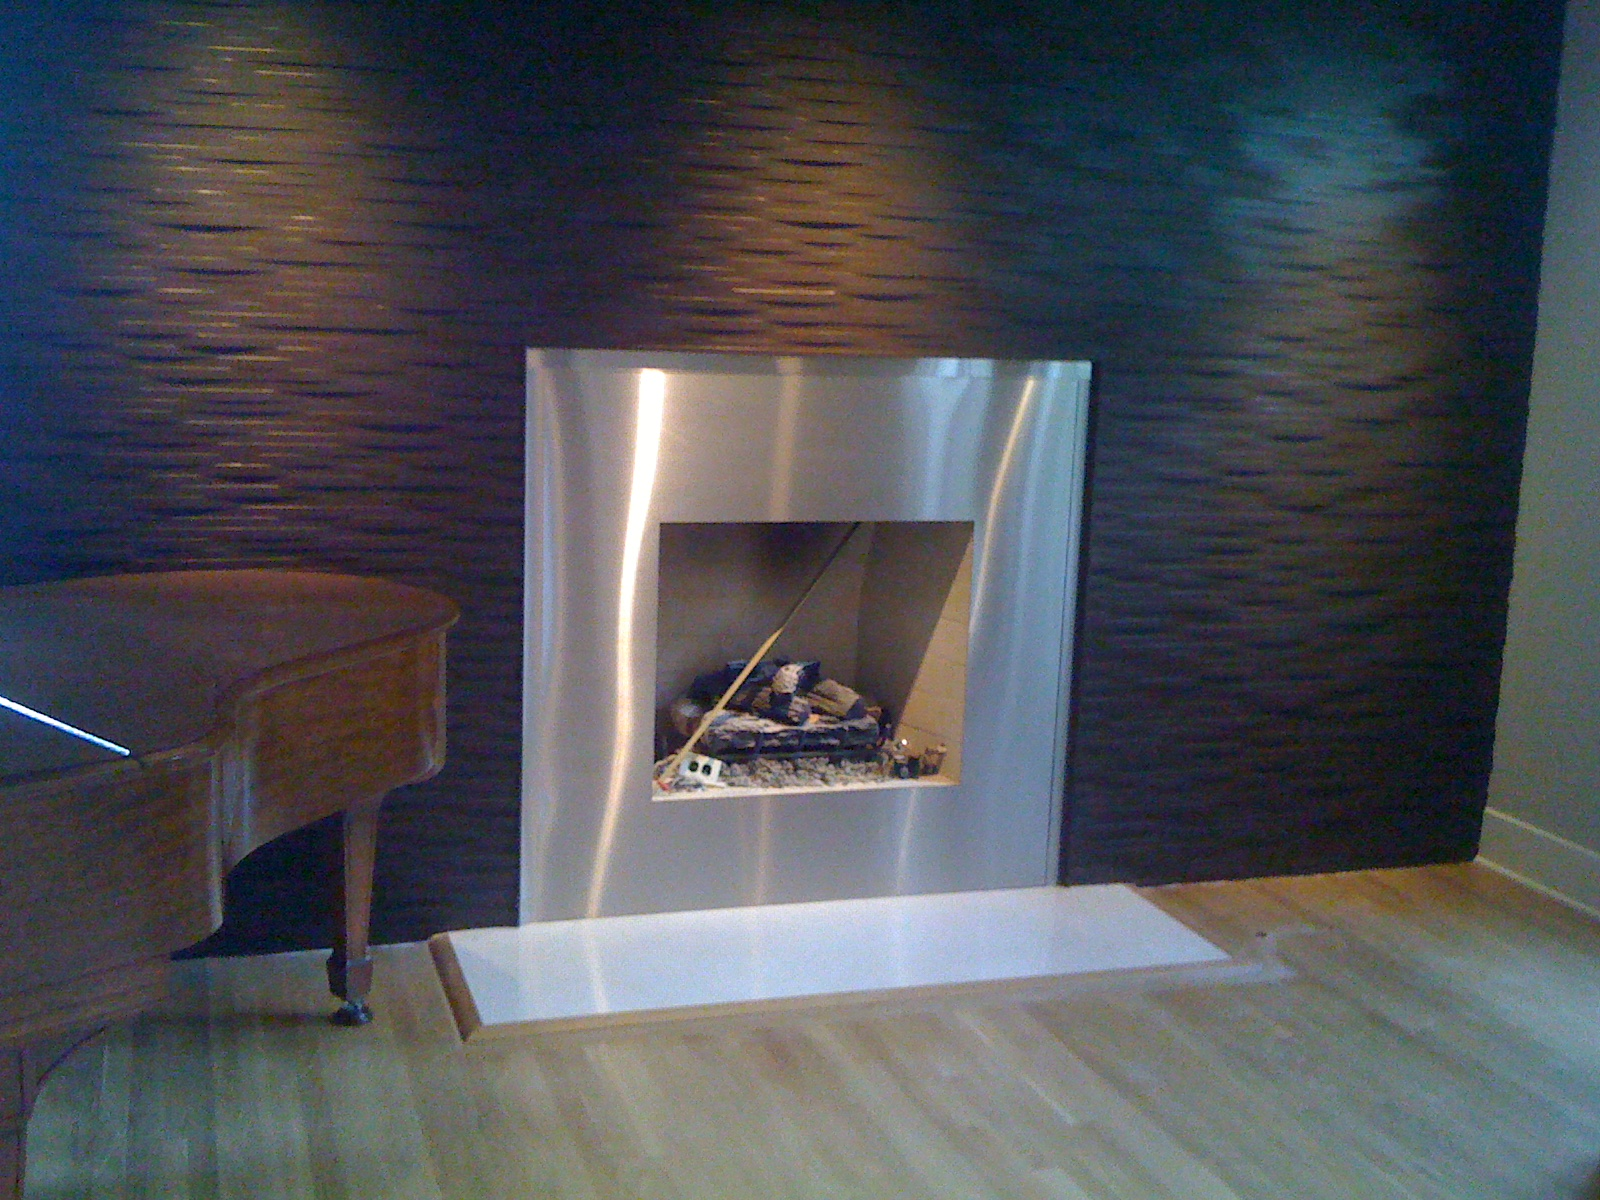 Metal fireplace surround is definitely eye-catching